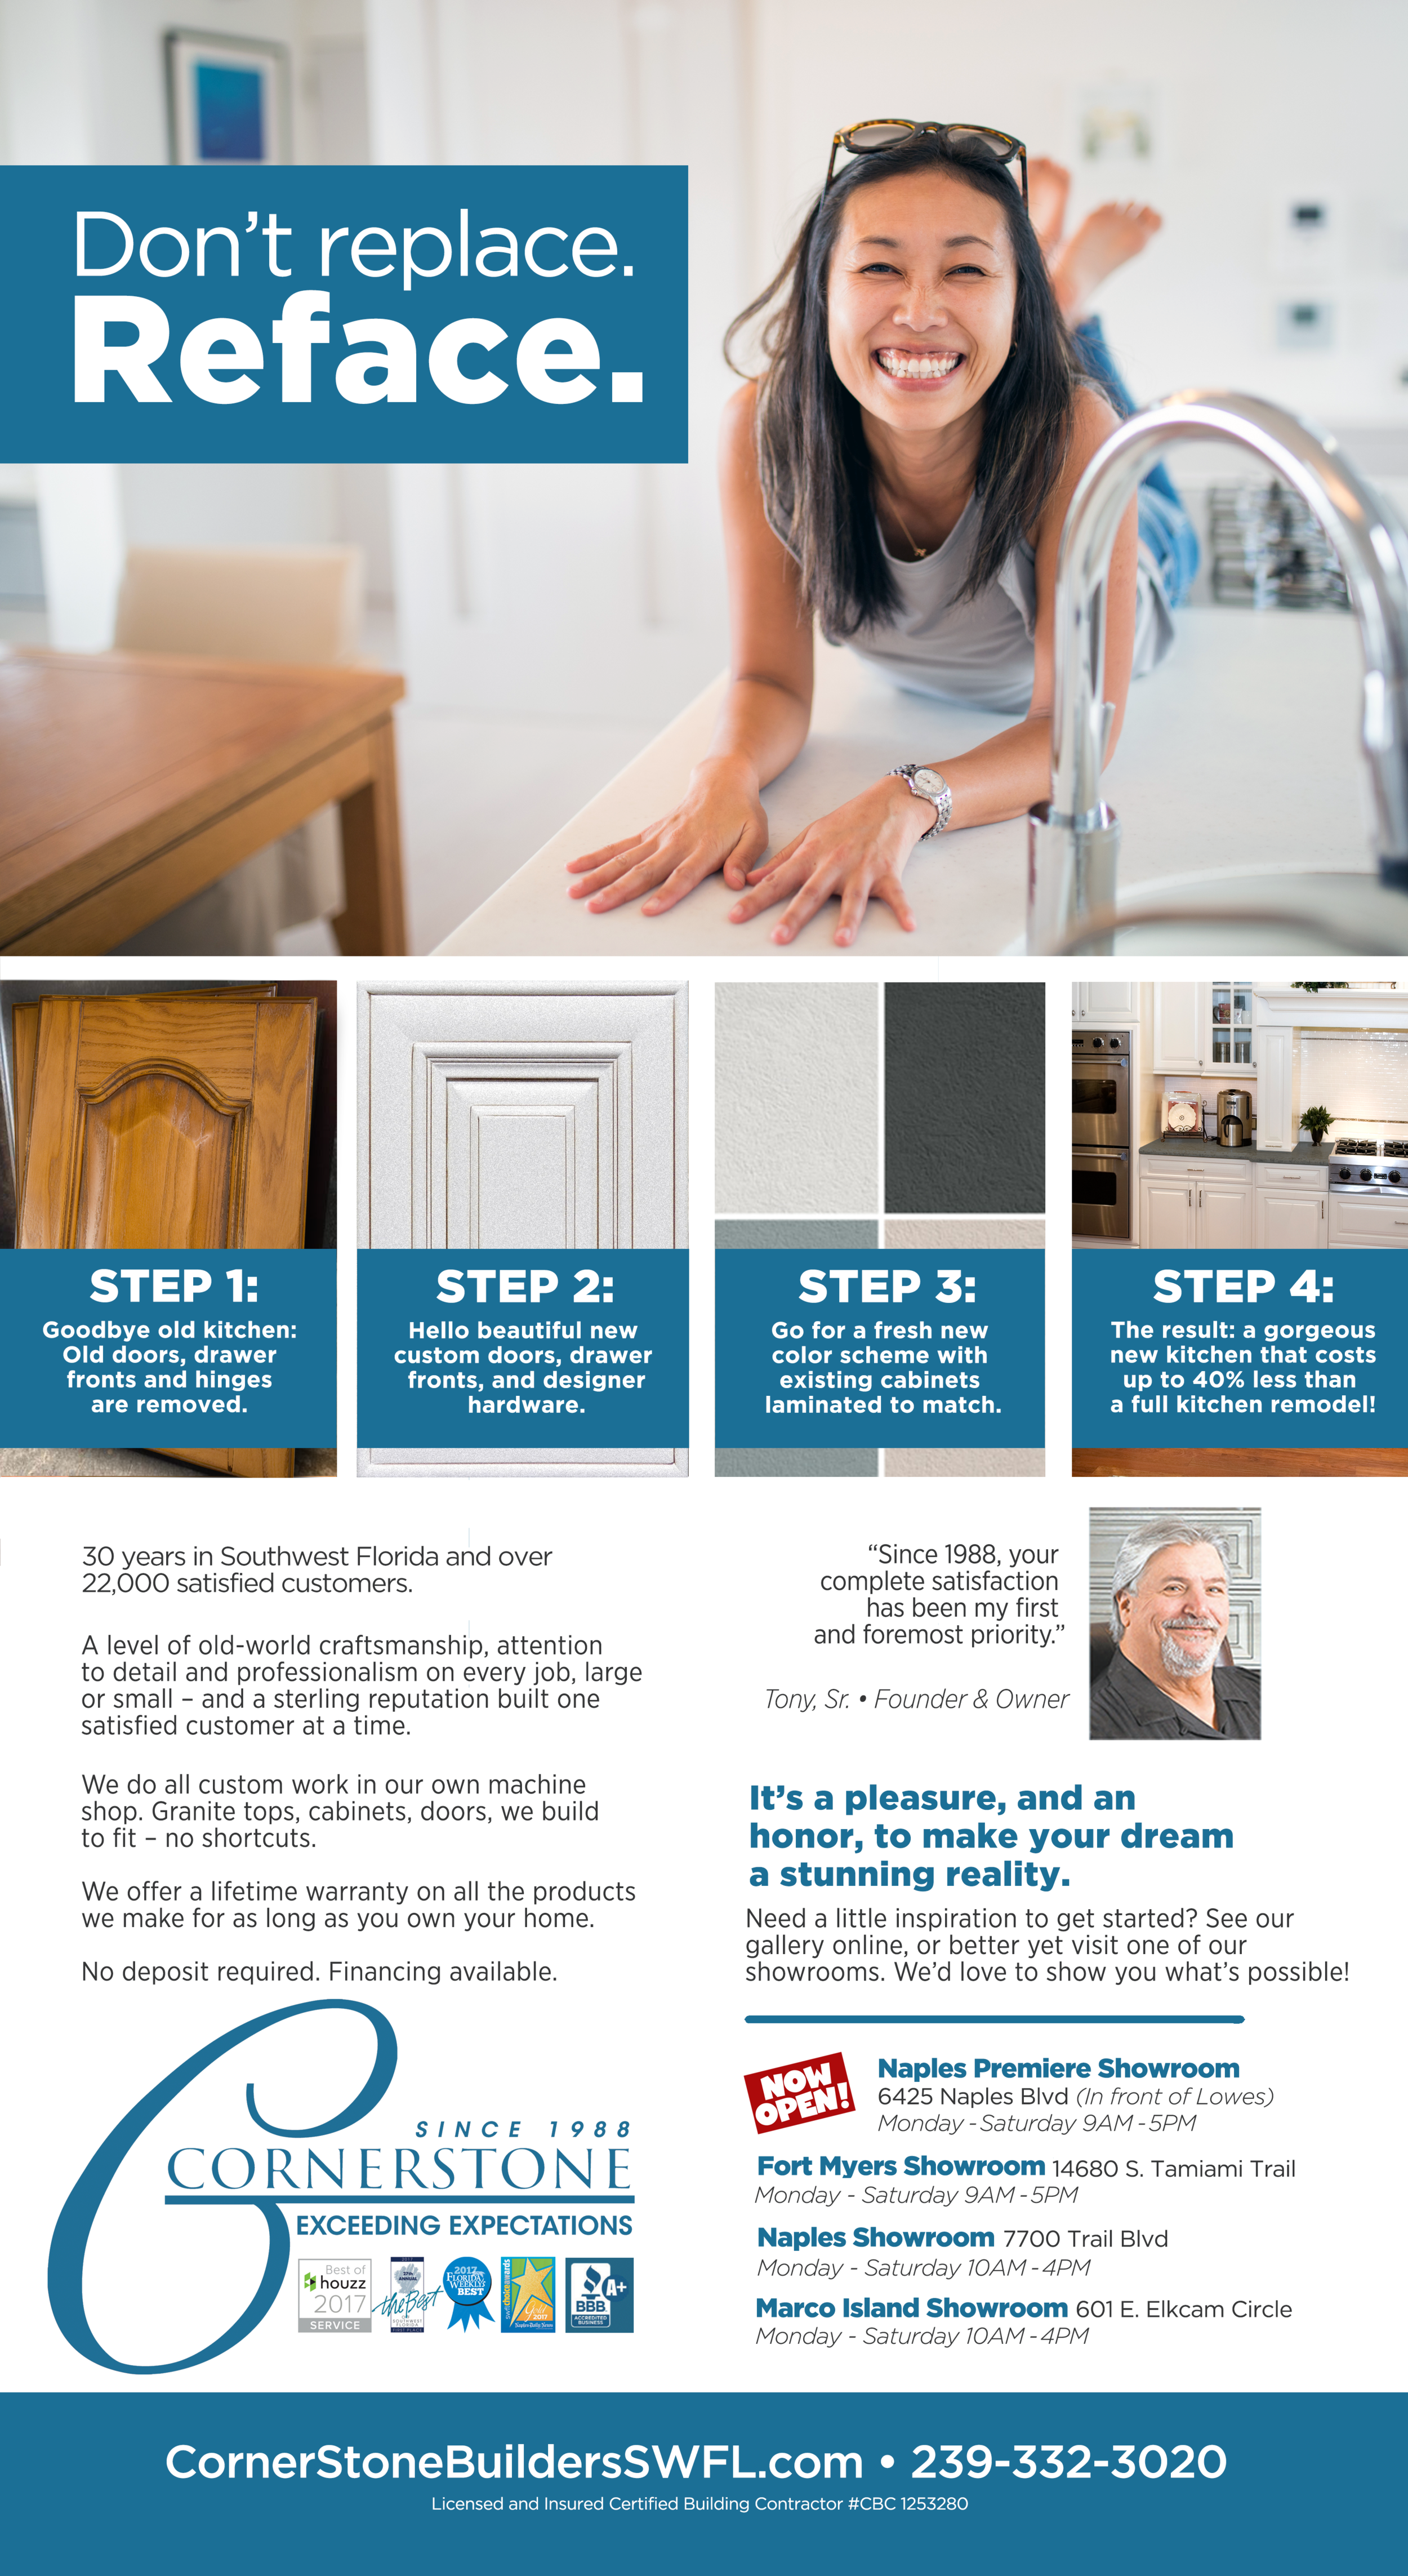 New Cornerstone Bathroom Re-Face Ad 4-11-19-VB.png